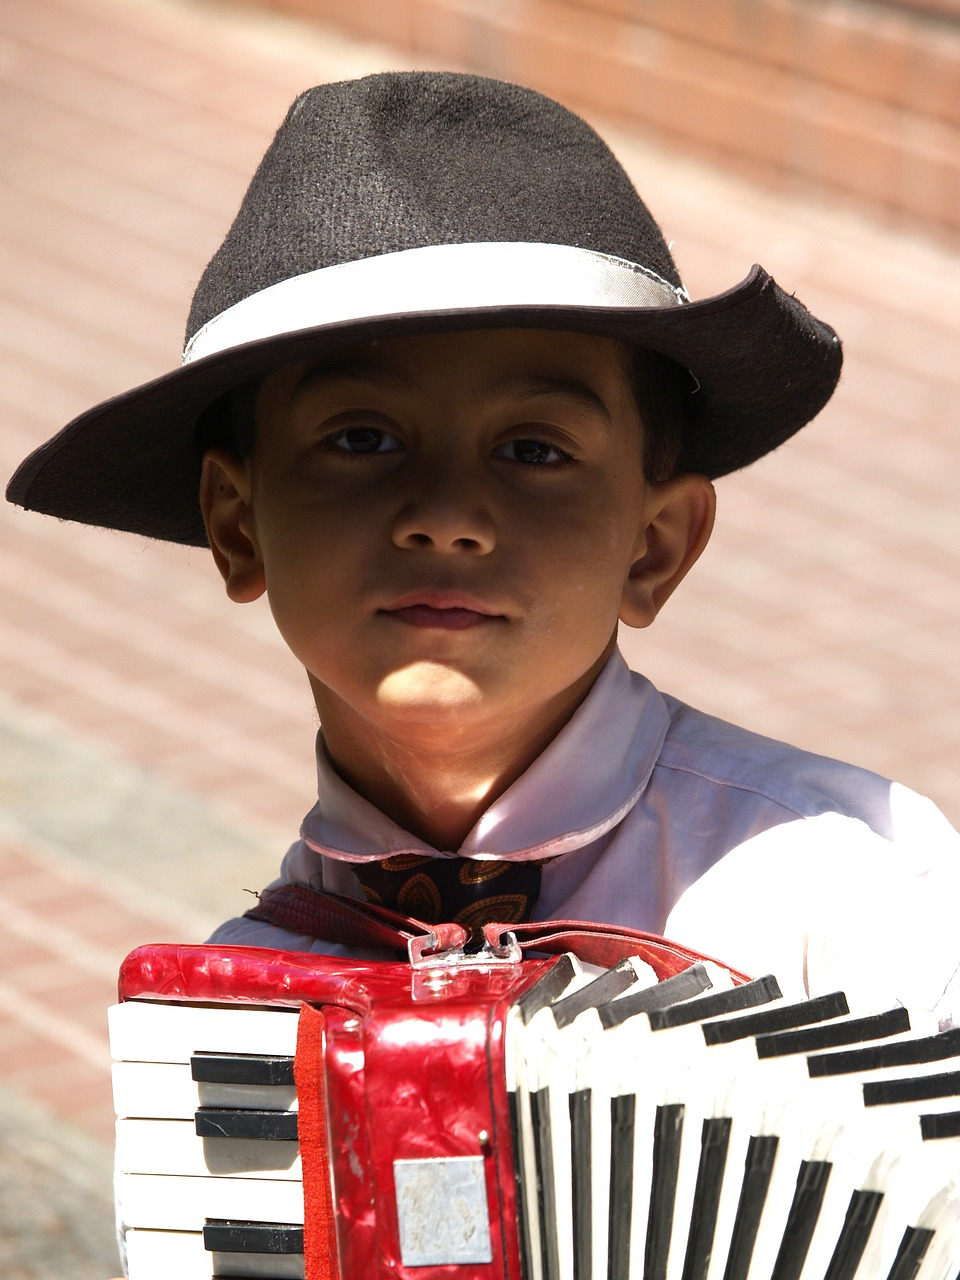 child,cute,hat,person,playing,accordion,childhood,free pictures, free photos, free images, royalty free, free illustrations, public domain